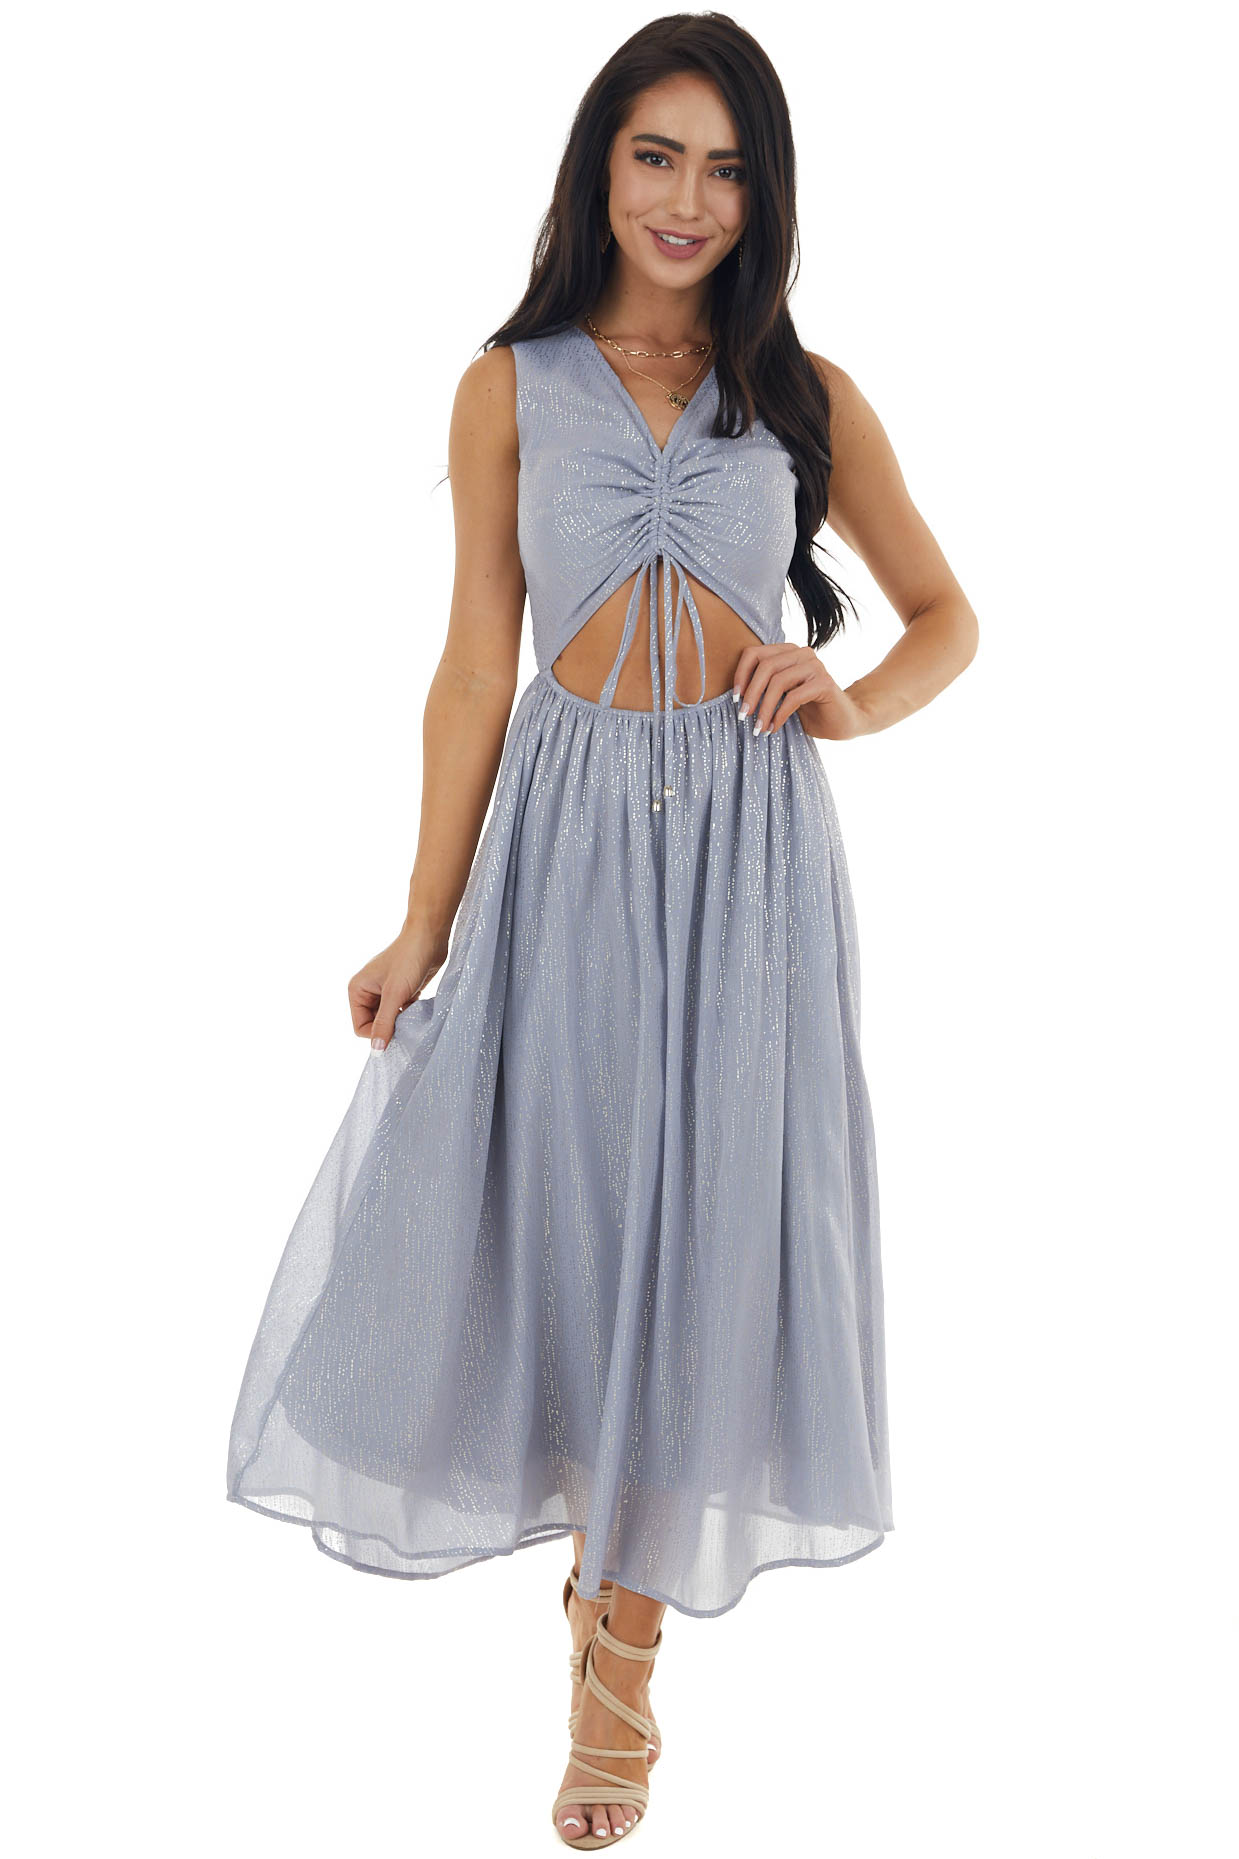 Dusty Blue Glitter Sleeveless Midi Woven Dress with Cut Out